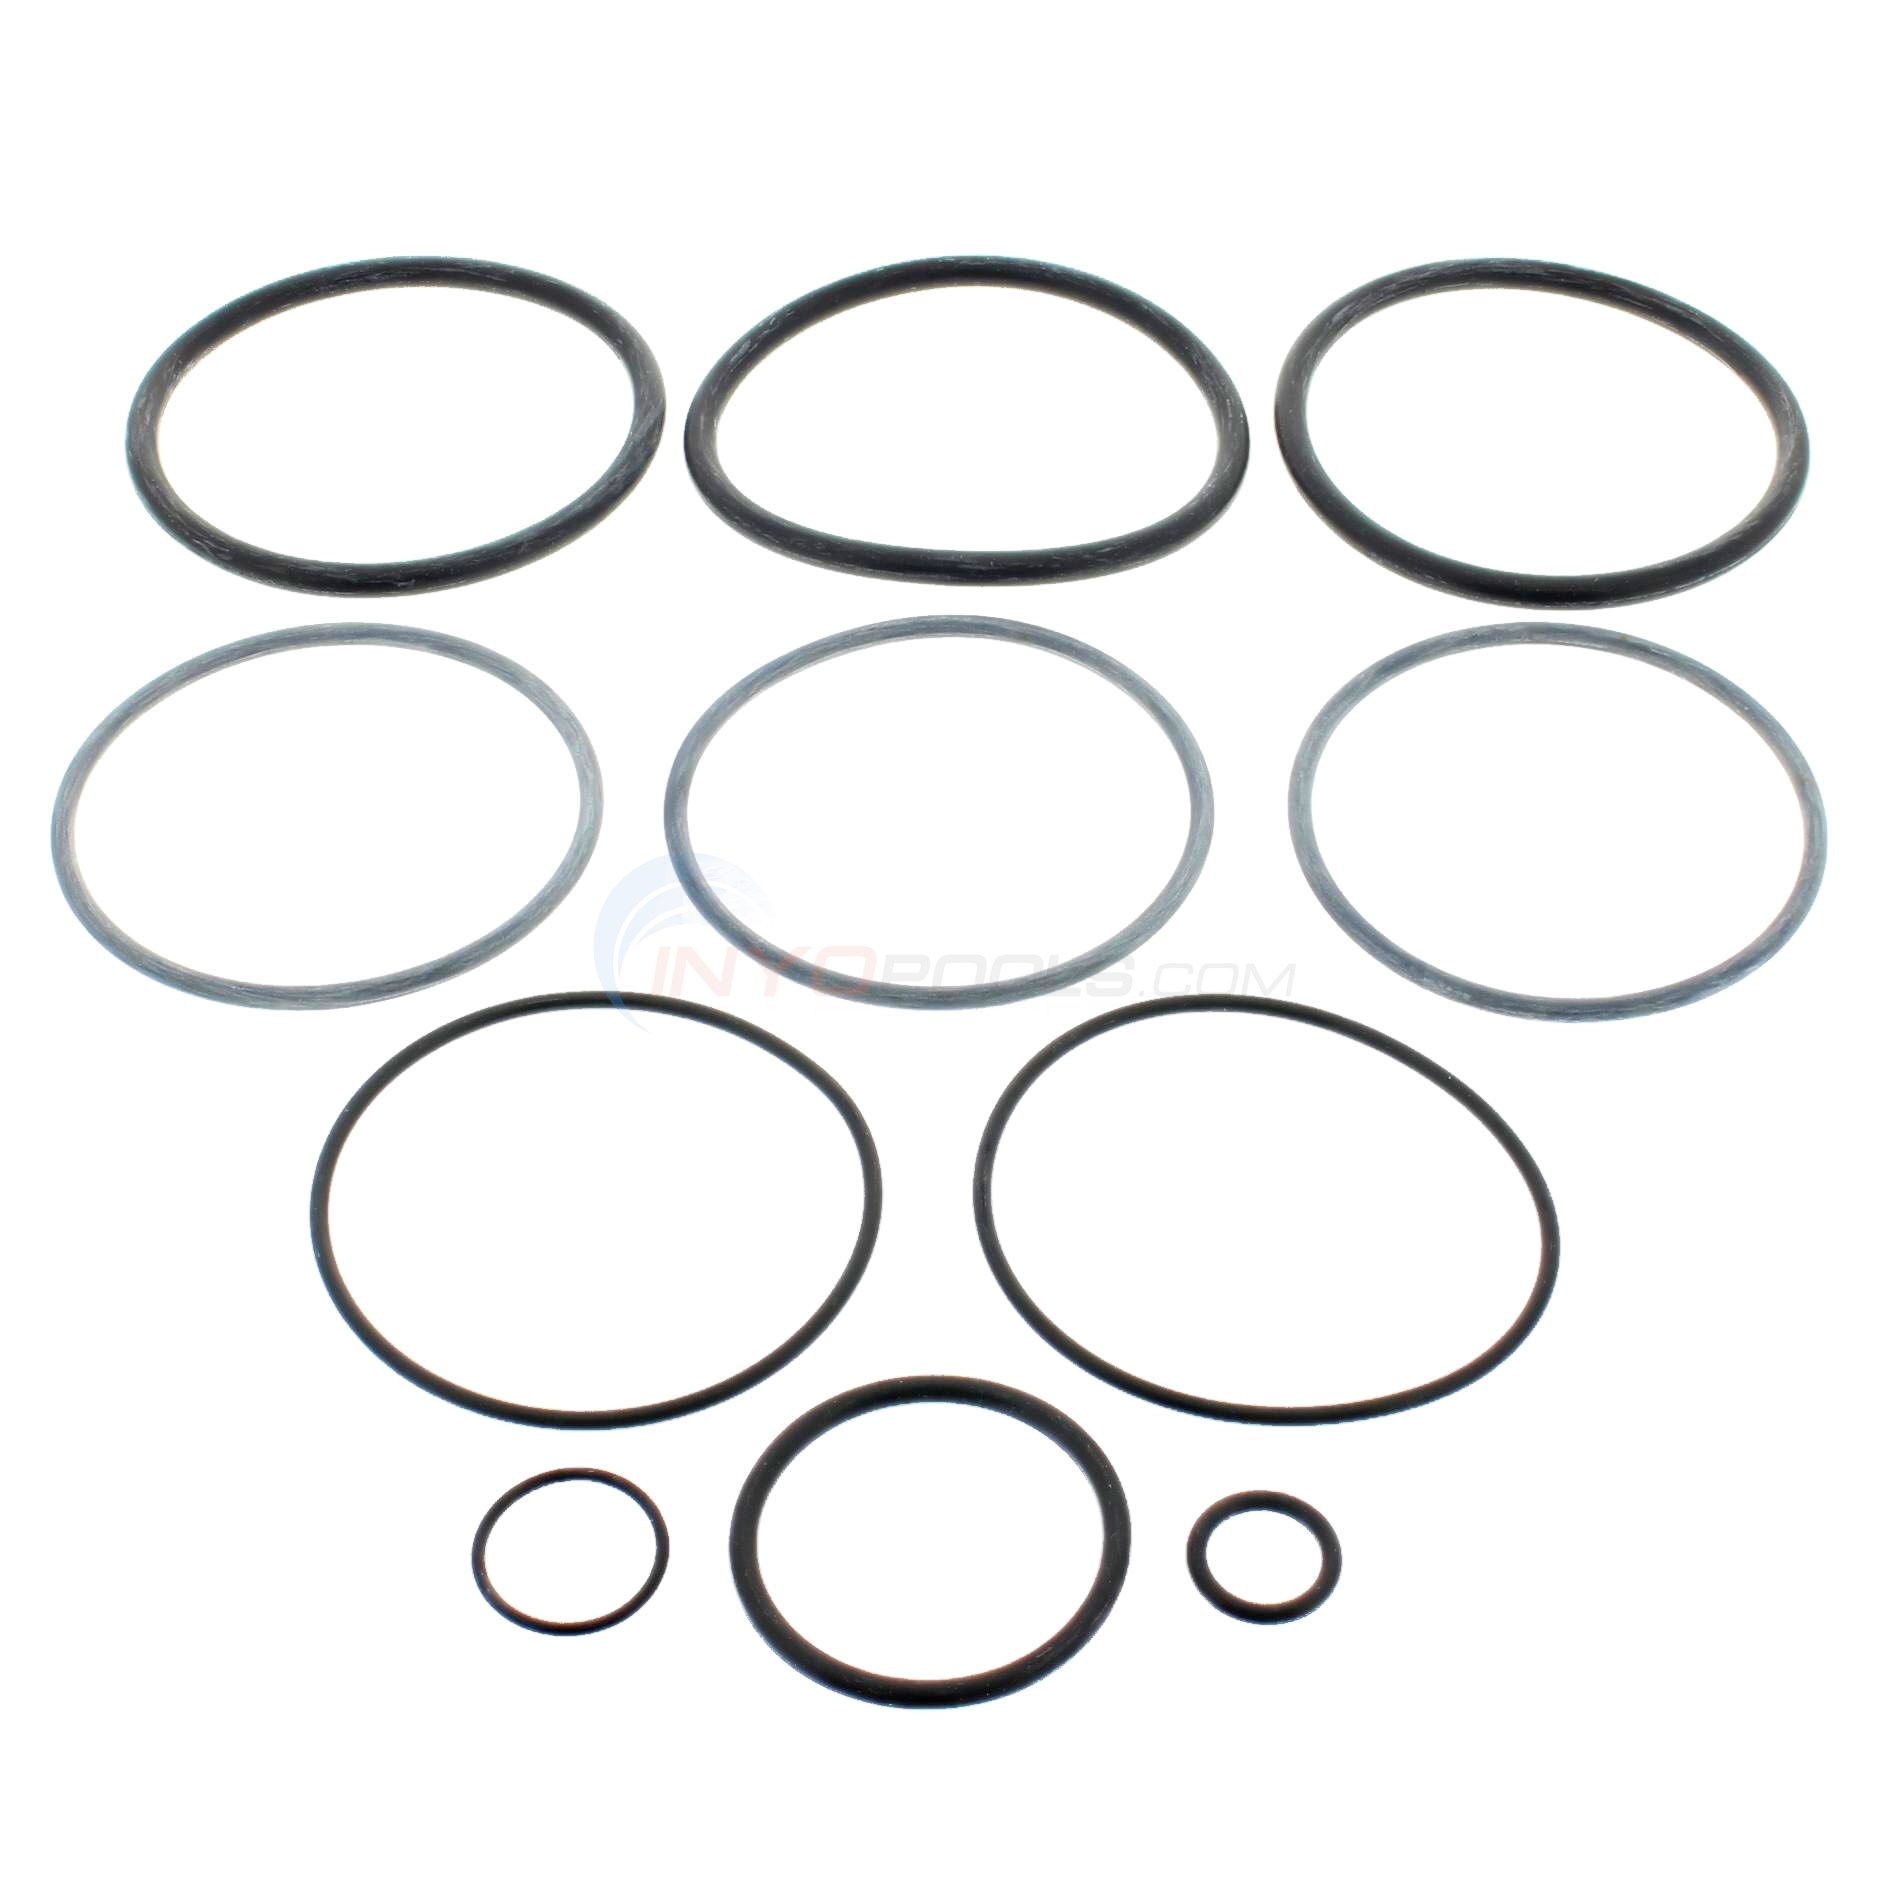 O-RING REPLACEMENT KIT